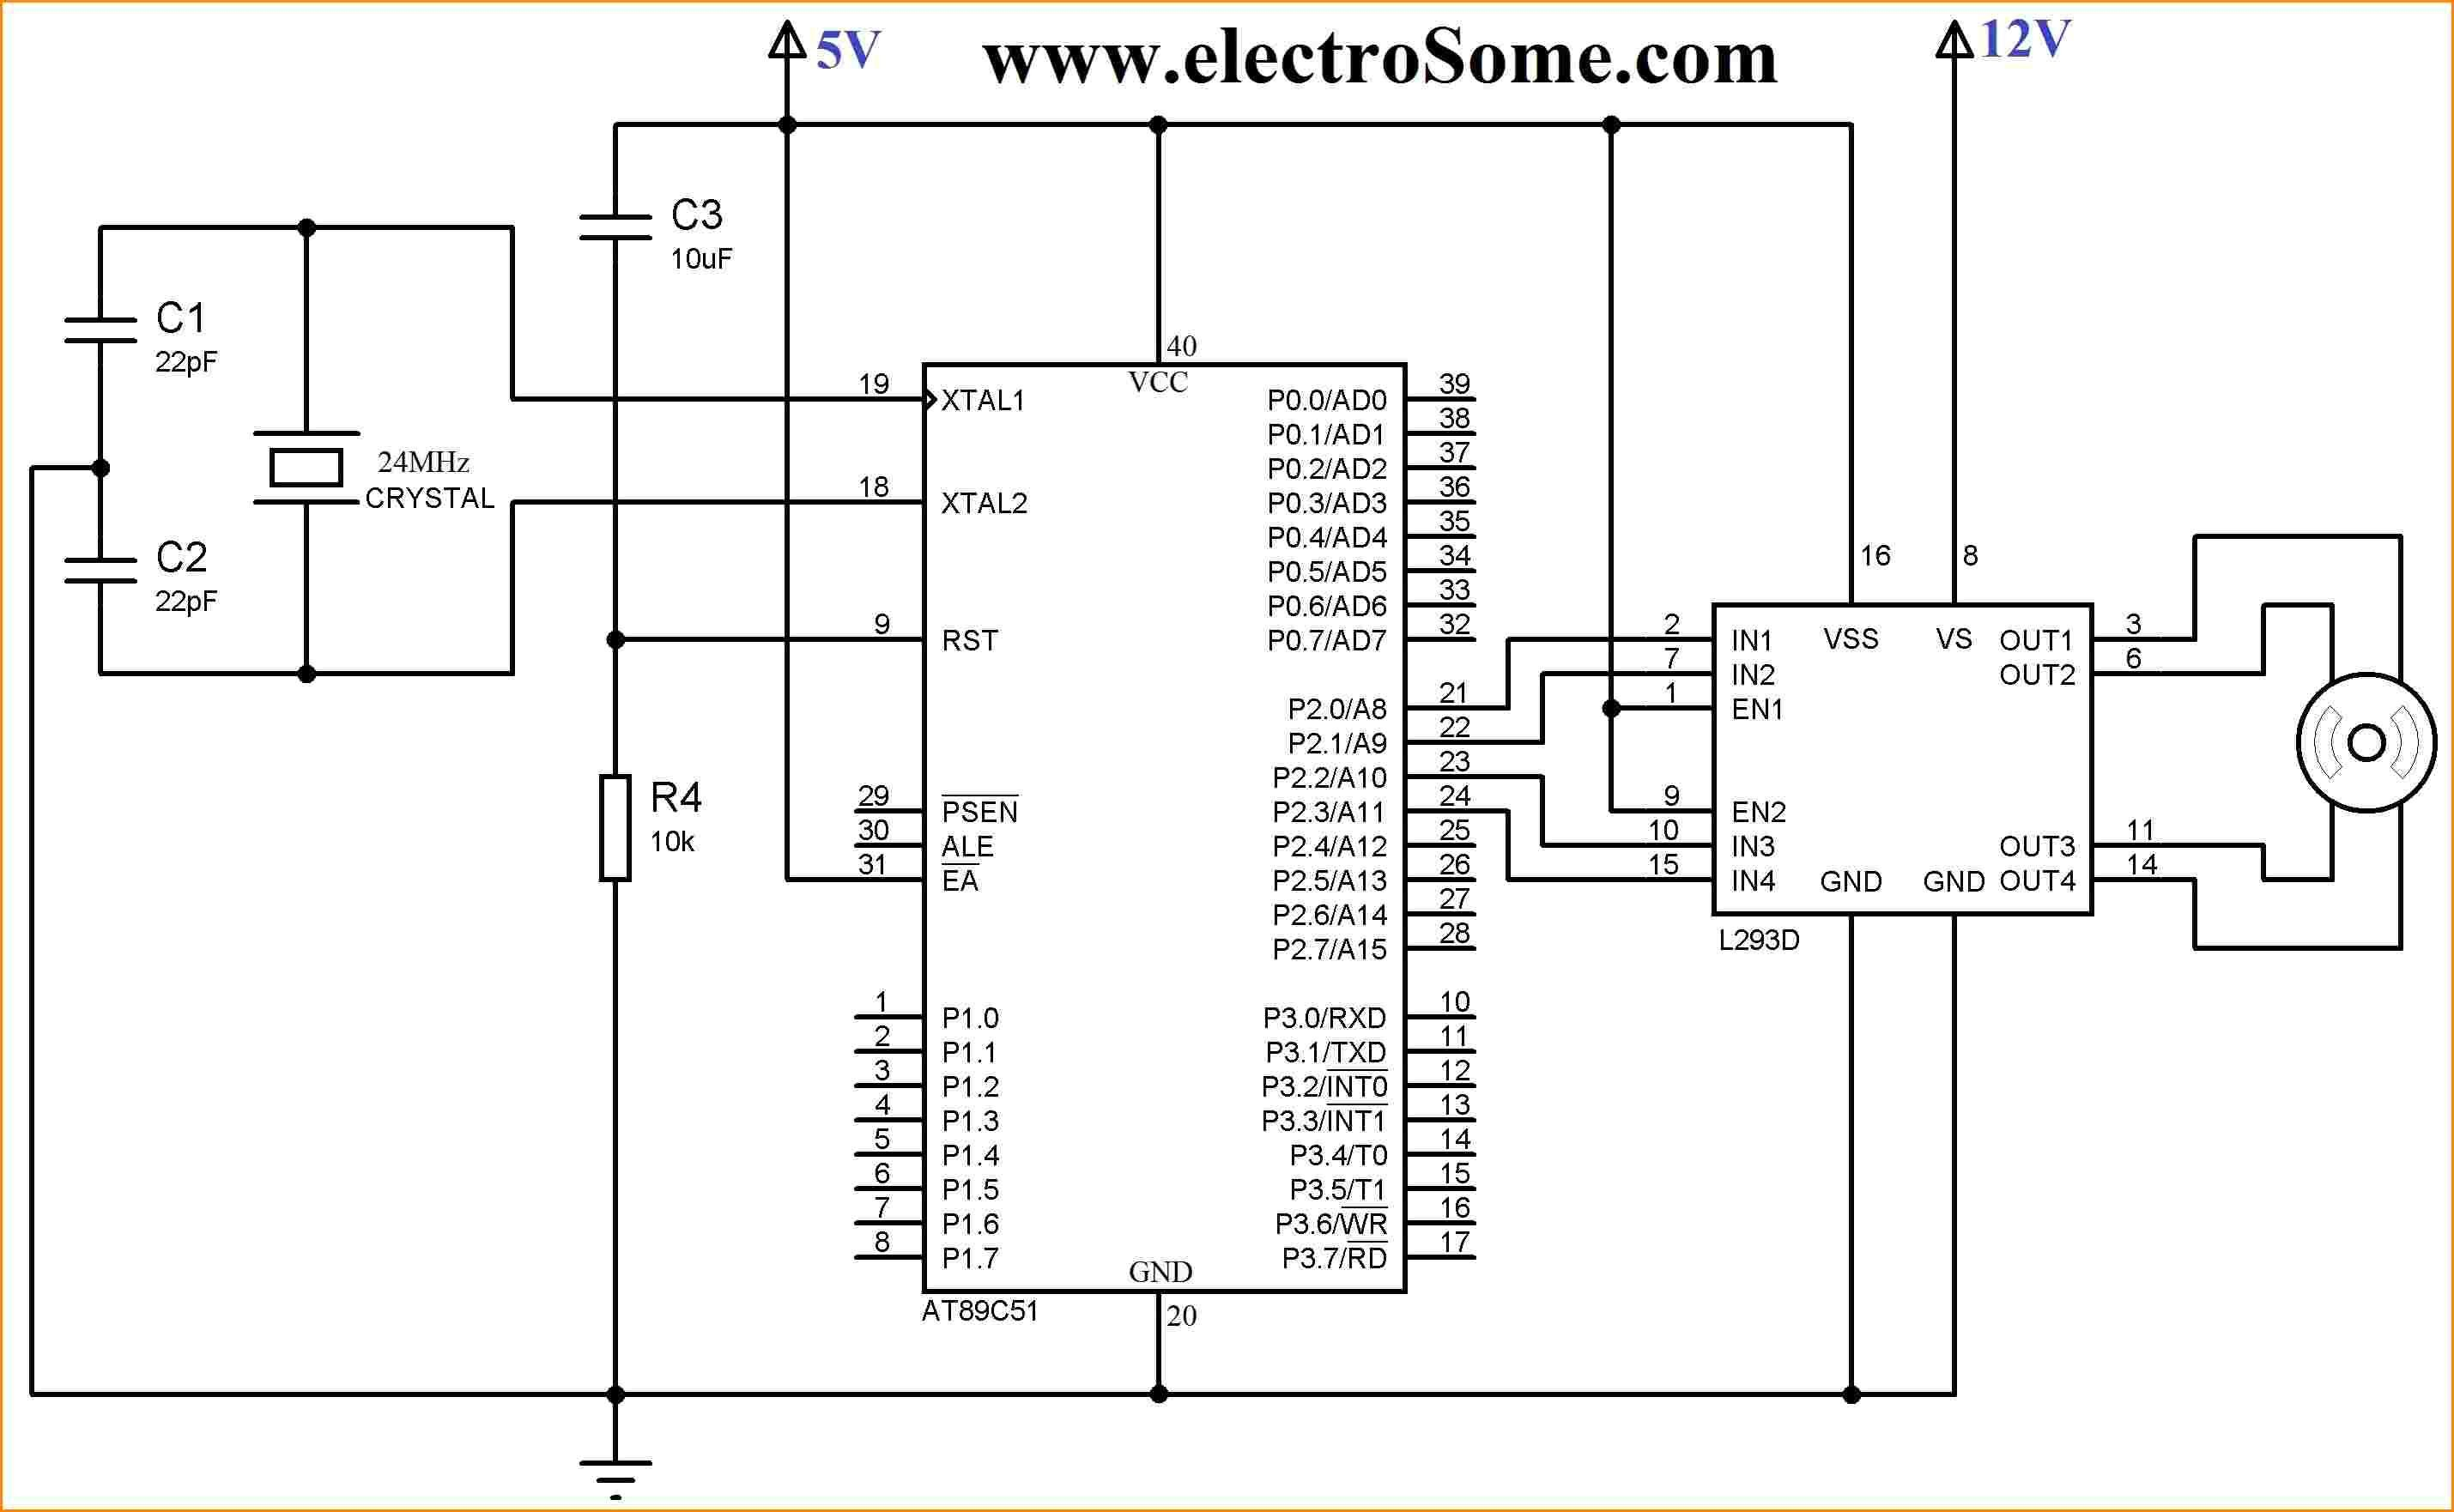 stepper motor wiring diagram Collection-Stepper Motor Wiring Diagram Related Post 11-p